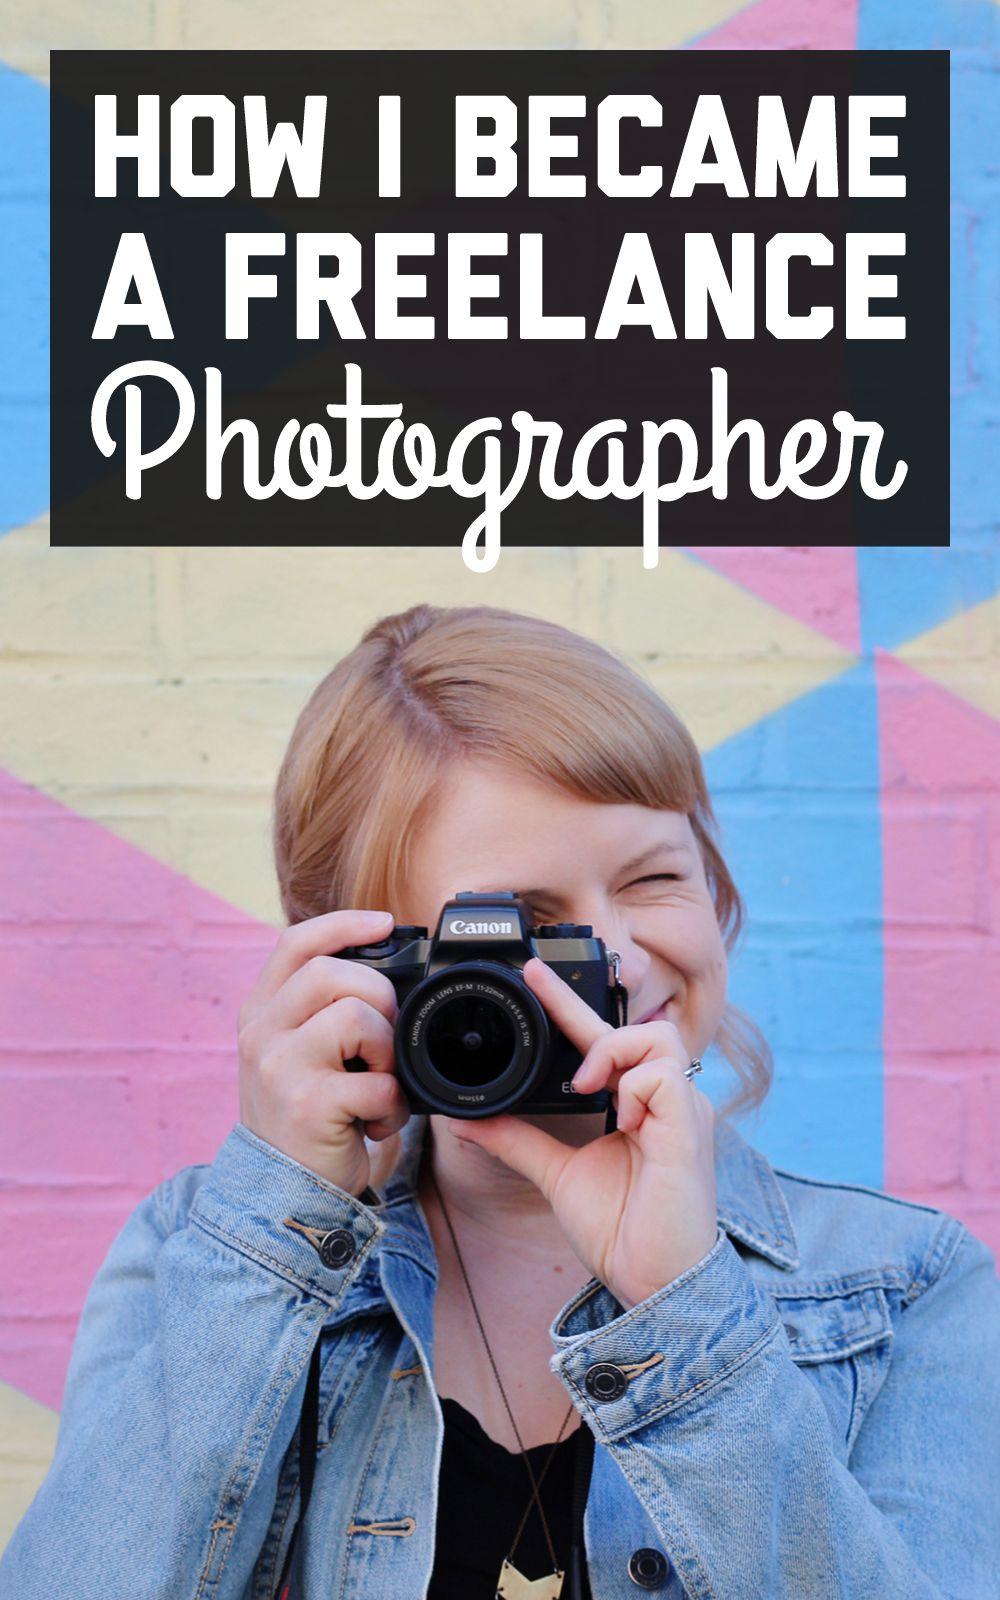 The Story Of How I Became A Freelance Photographer A Globe Well Travelled Freelance Photographer Photographer Photography Jobs